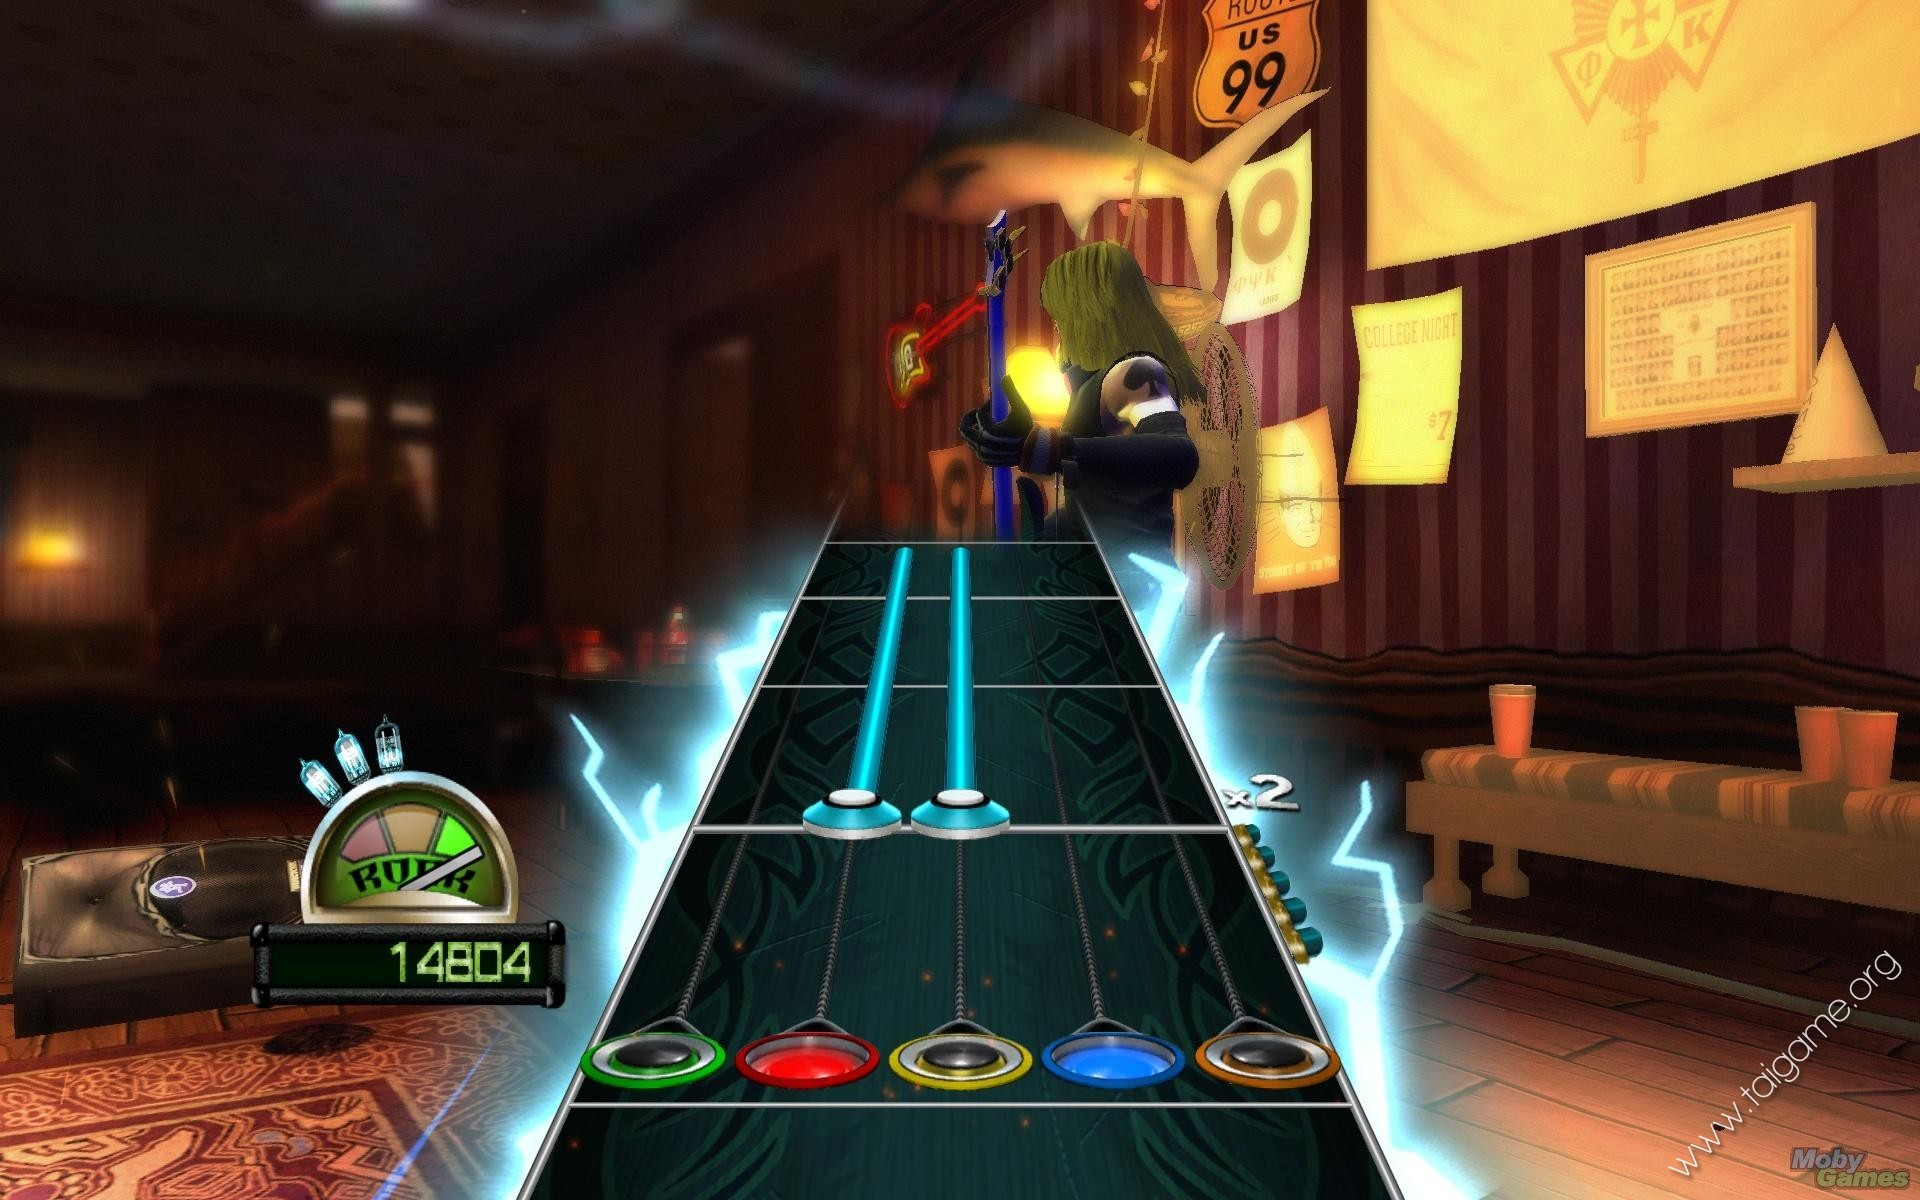 guitar hero similar games for android